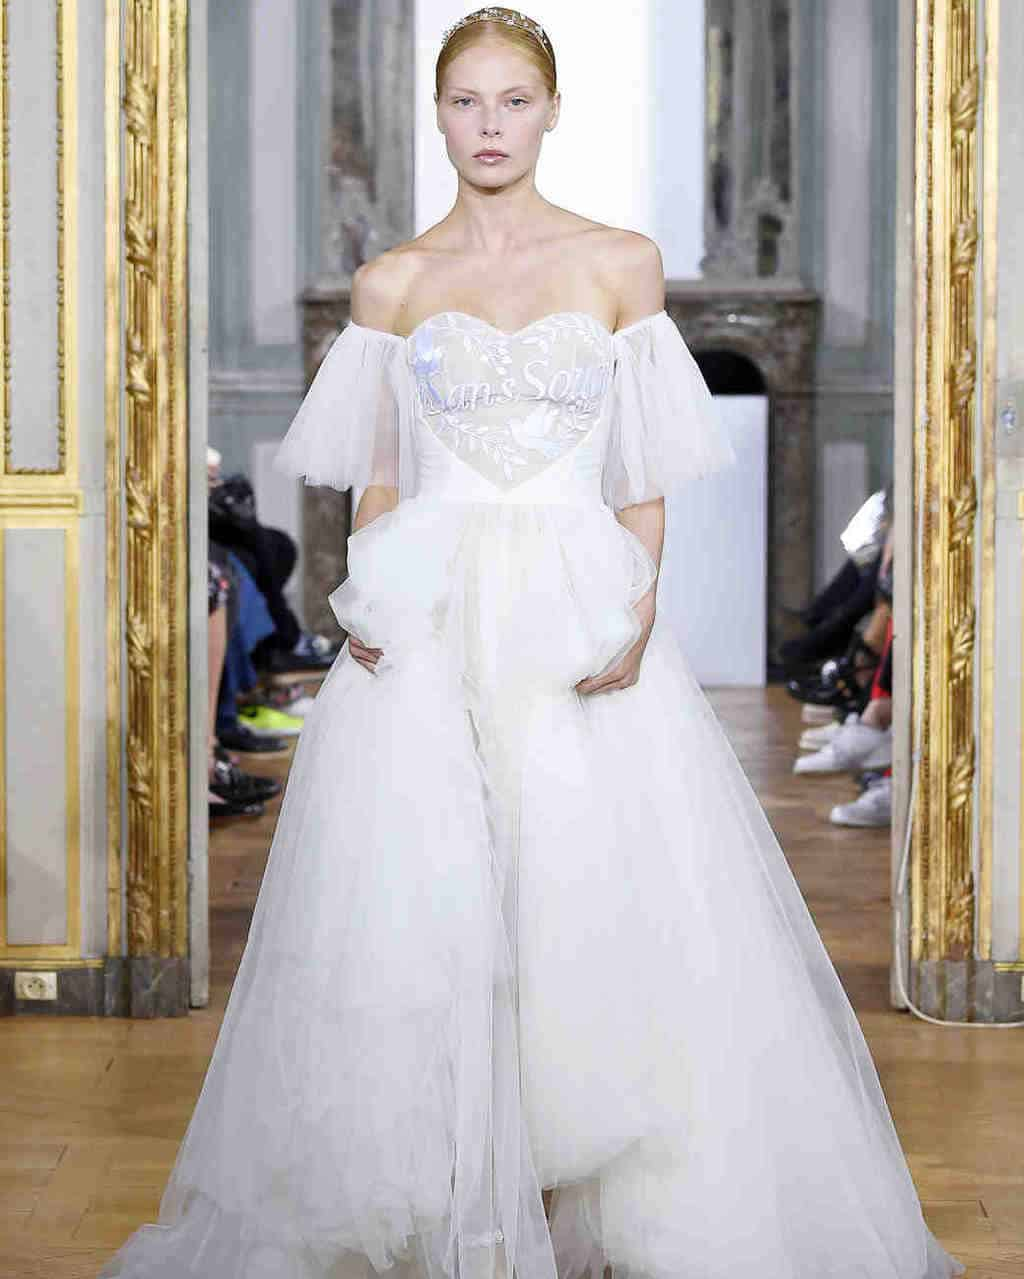 kaviar-gauche-wedding-dress-fall2017-023_vert